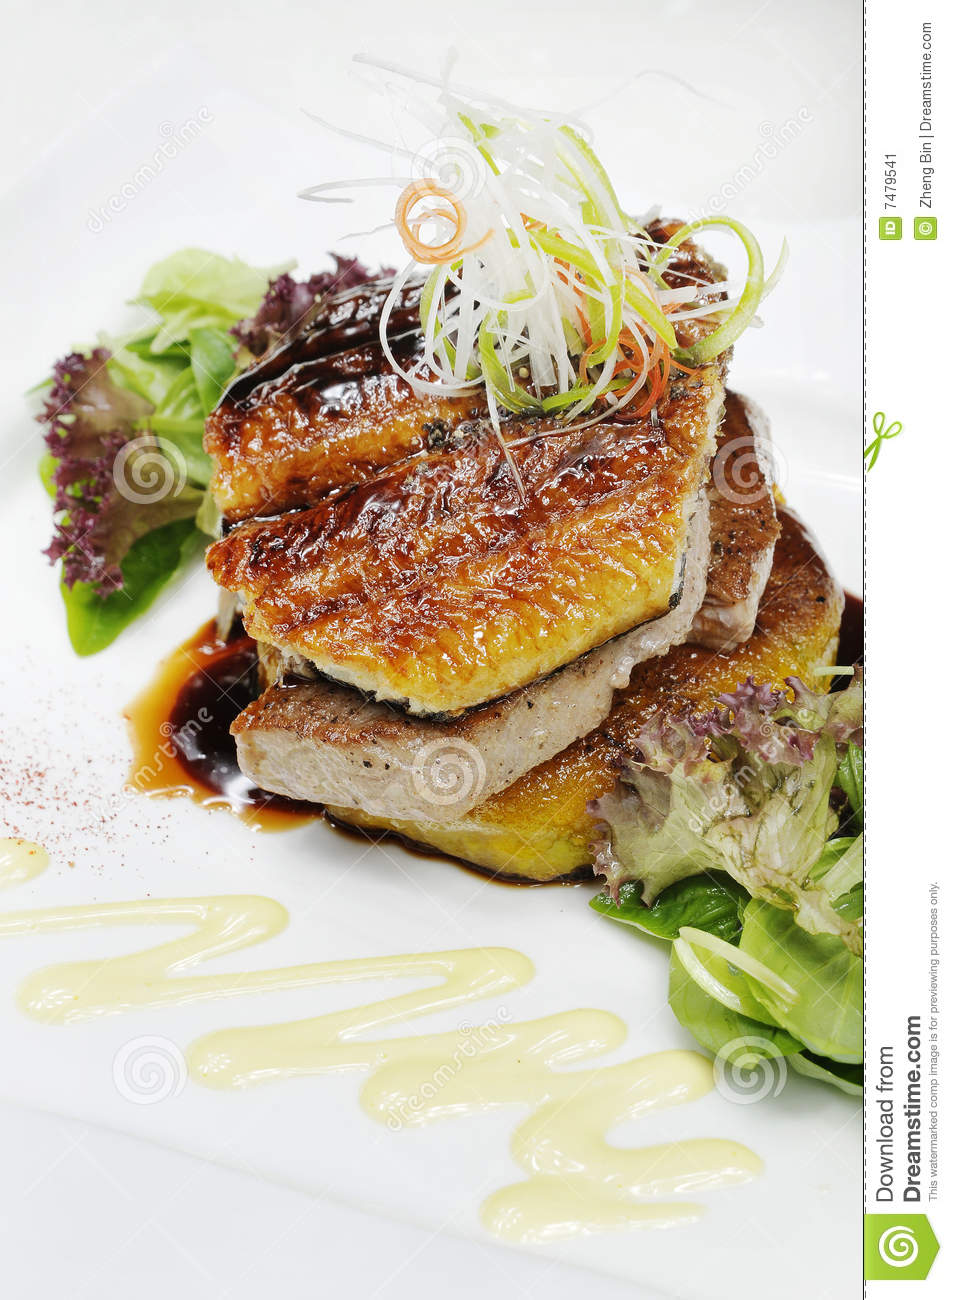 Fish meat stock image image 7479541 for Is fish considered meat